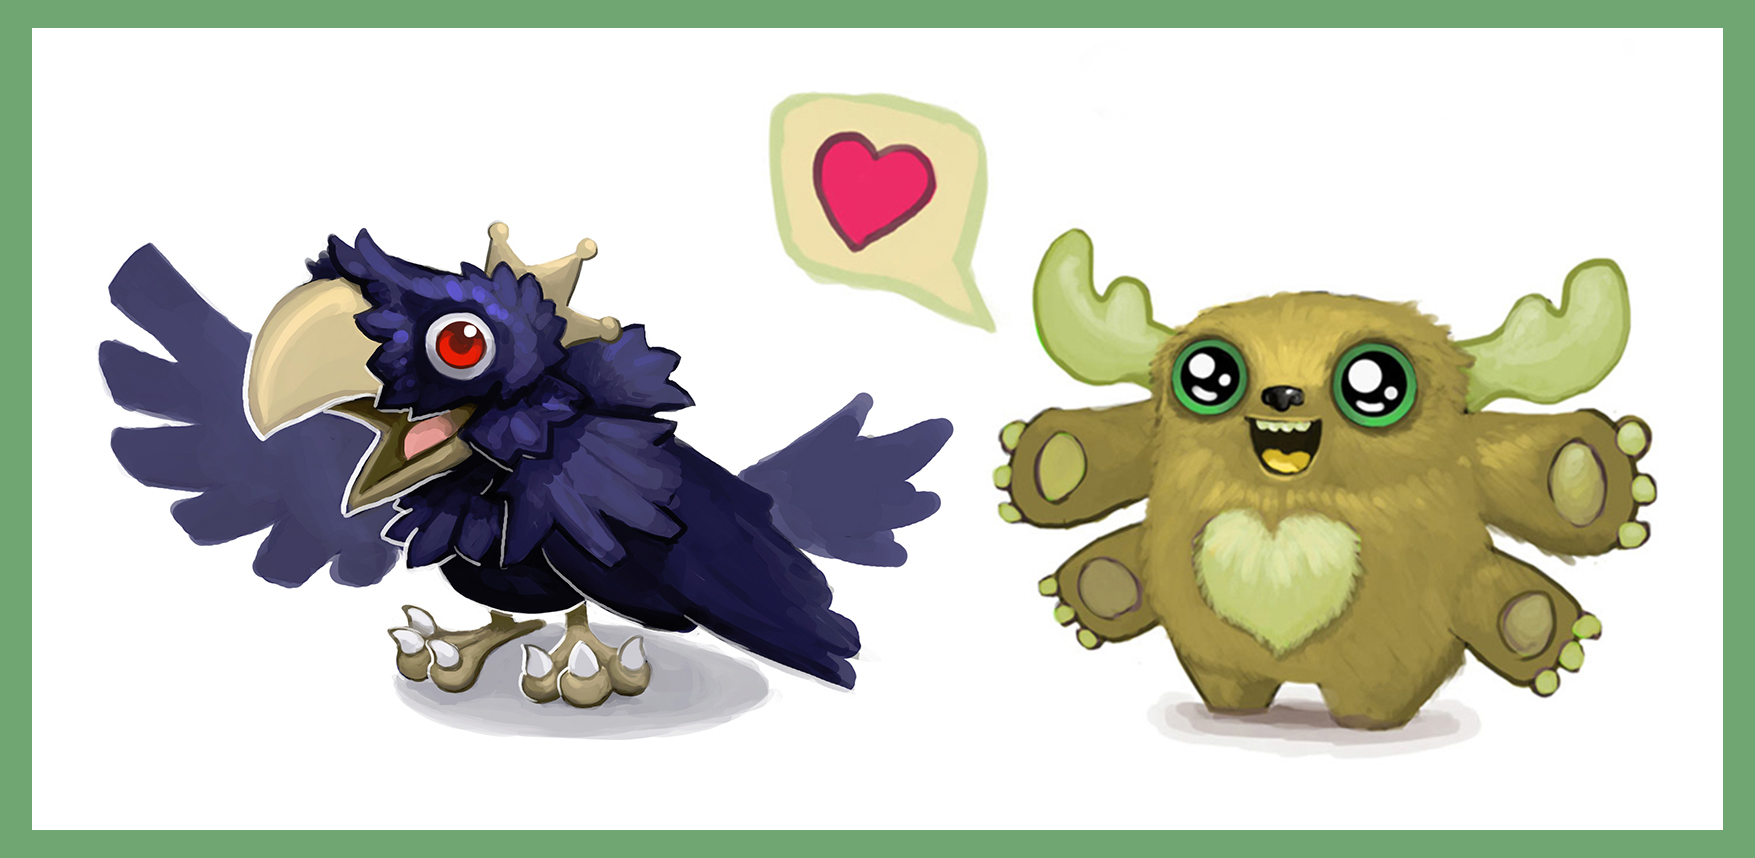 Critters by Dvolution